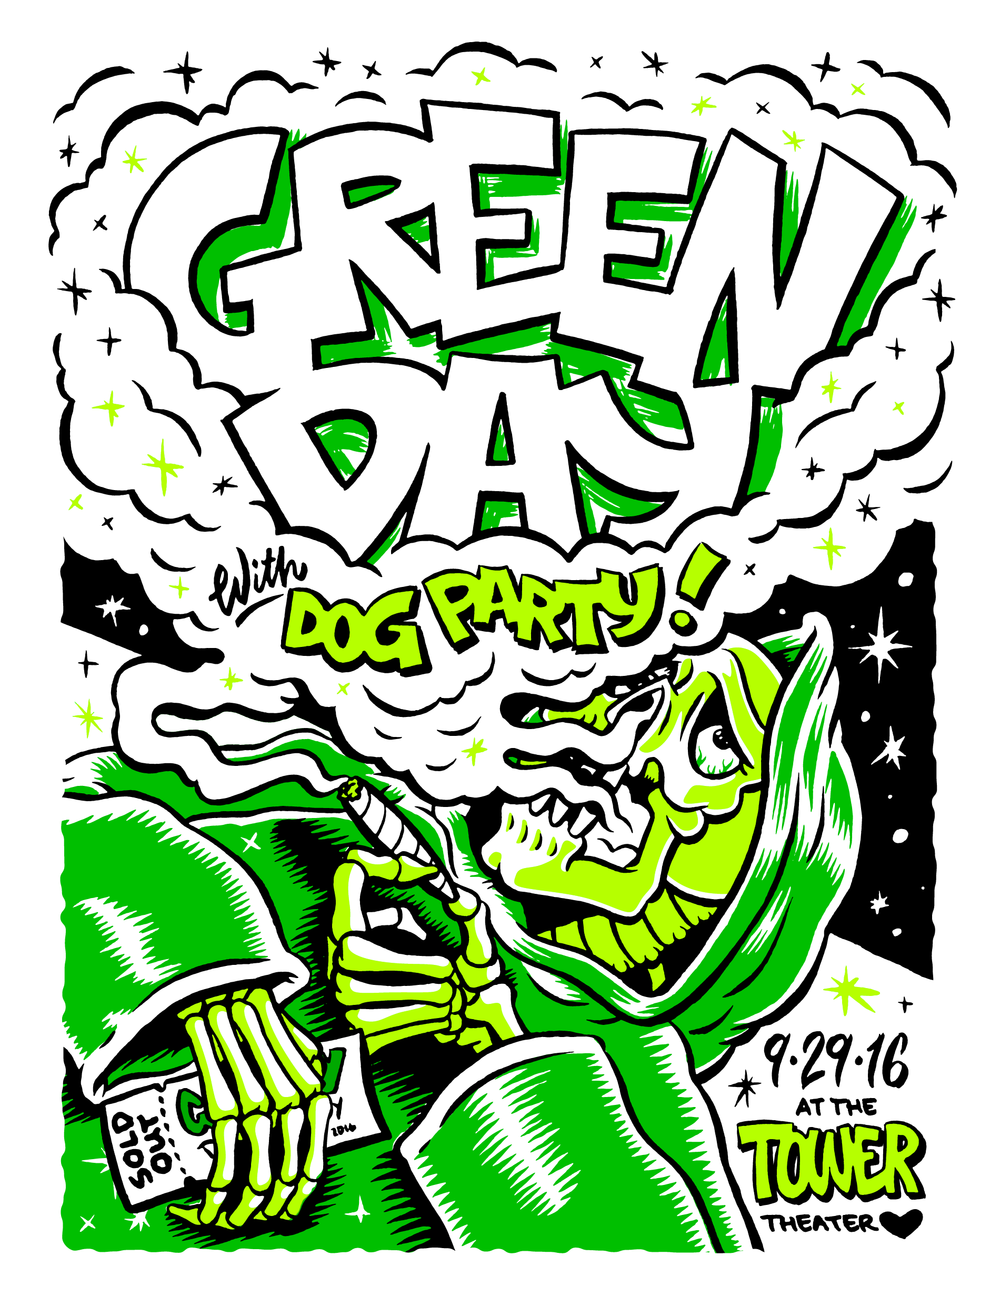 GreenDay_Poster_Tower_9-29-16_r2.png